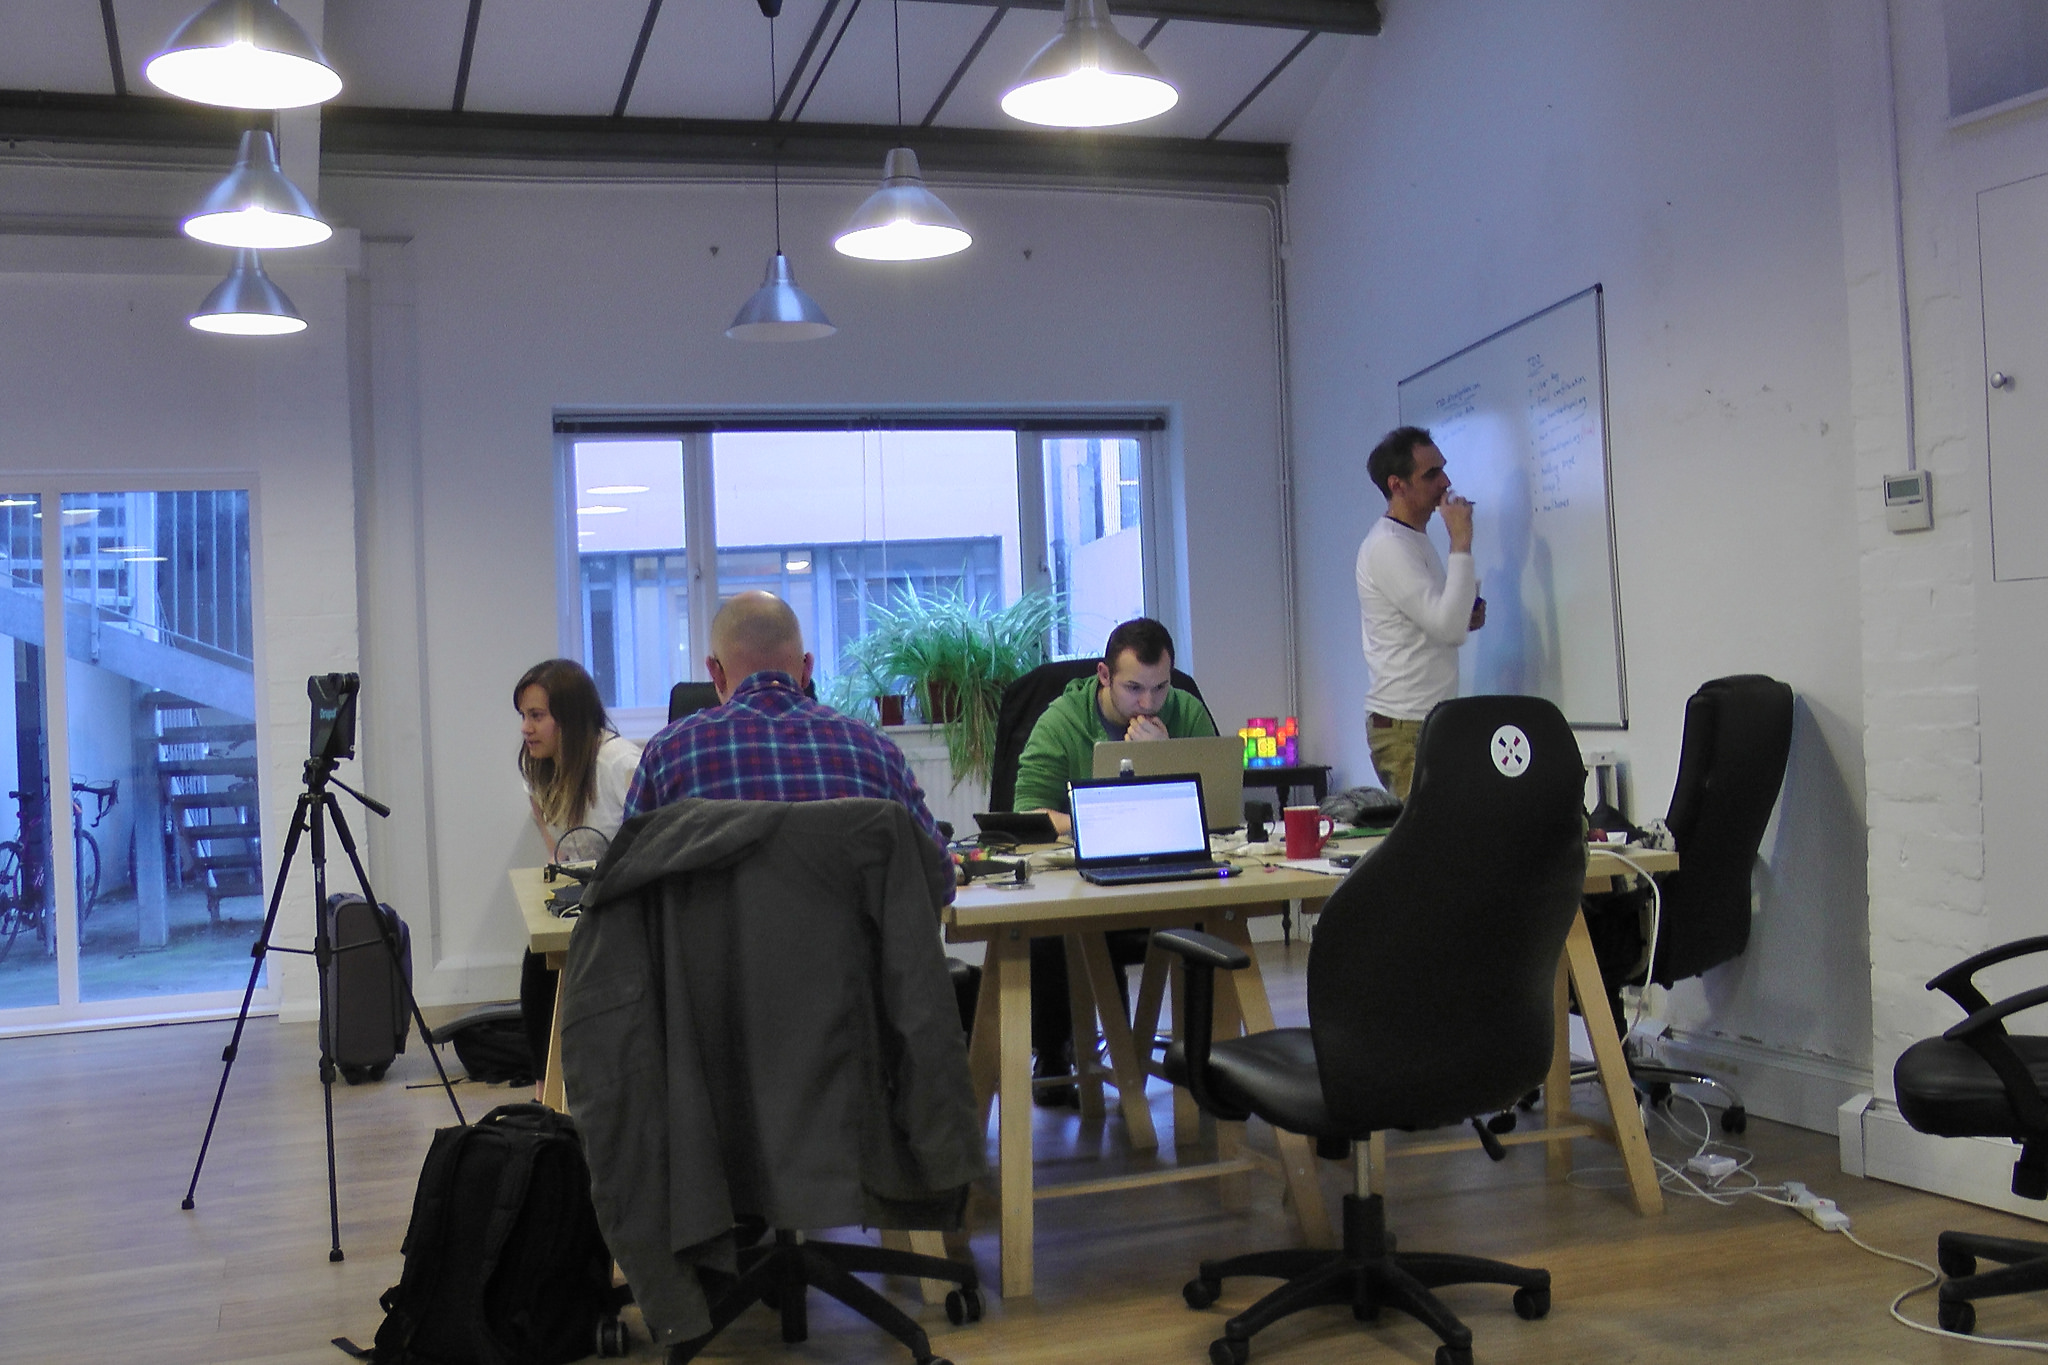 blogger for hire coworking